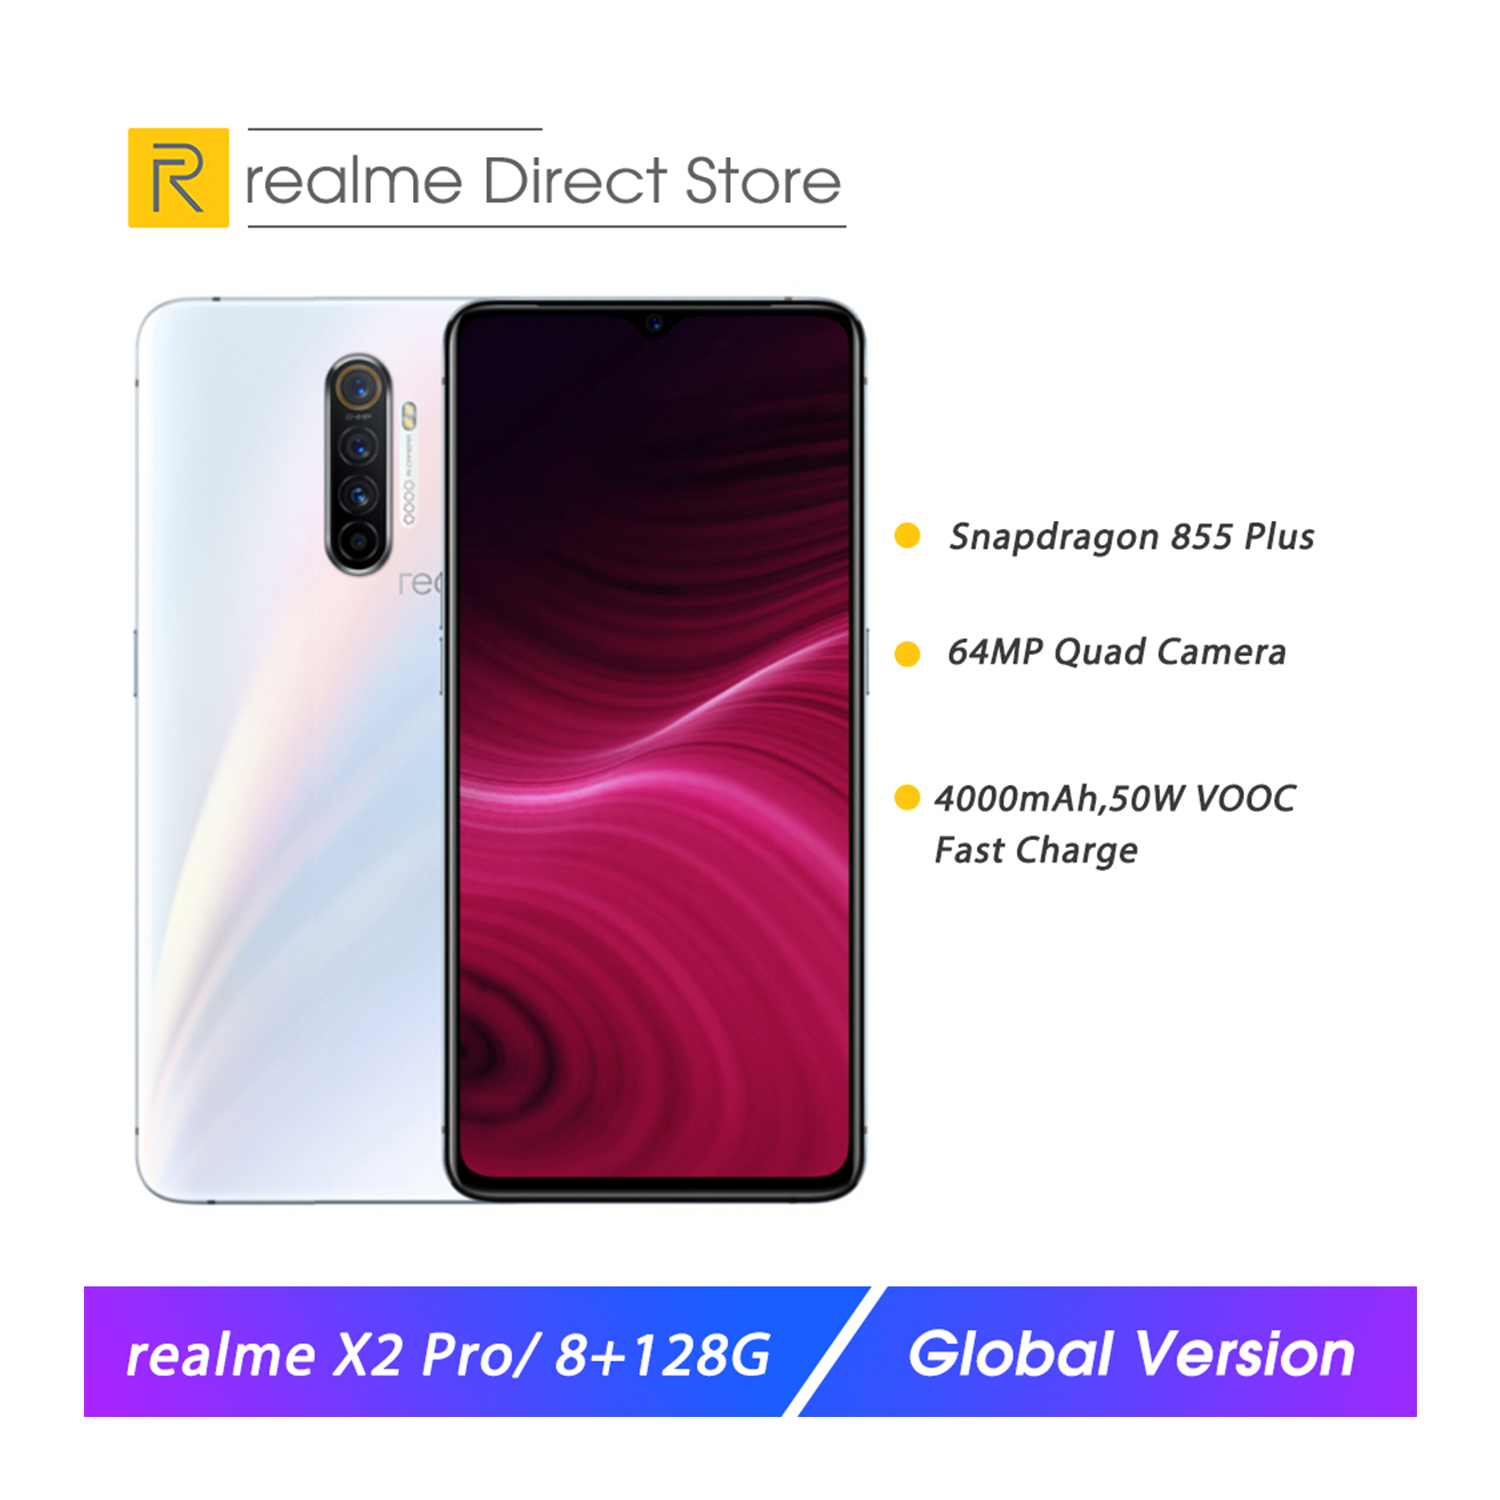 Realme X2 Pro 8GB 128GB 6.5'' Moblie Phone Snapdragon 855 Plus 64MP Quad Camera NFC Smartphone OPPO VOOC 50W Fast Charger